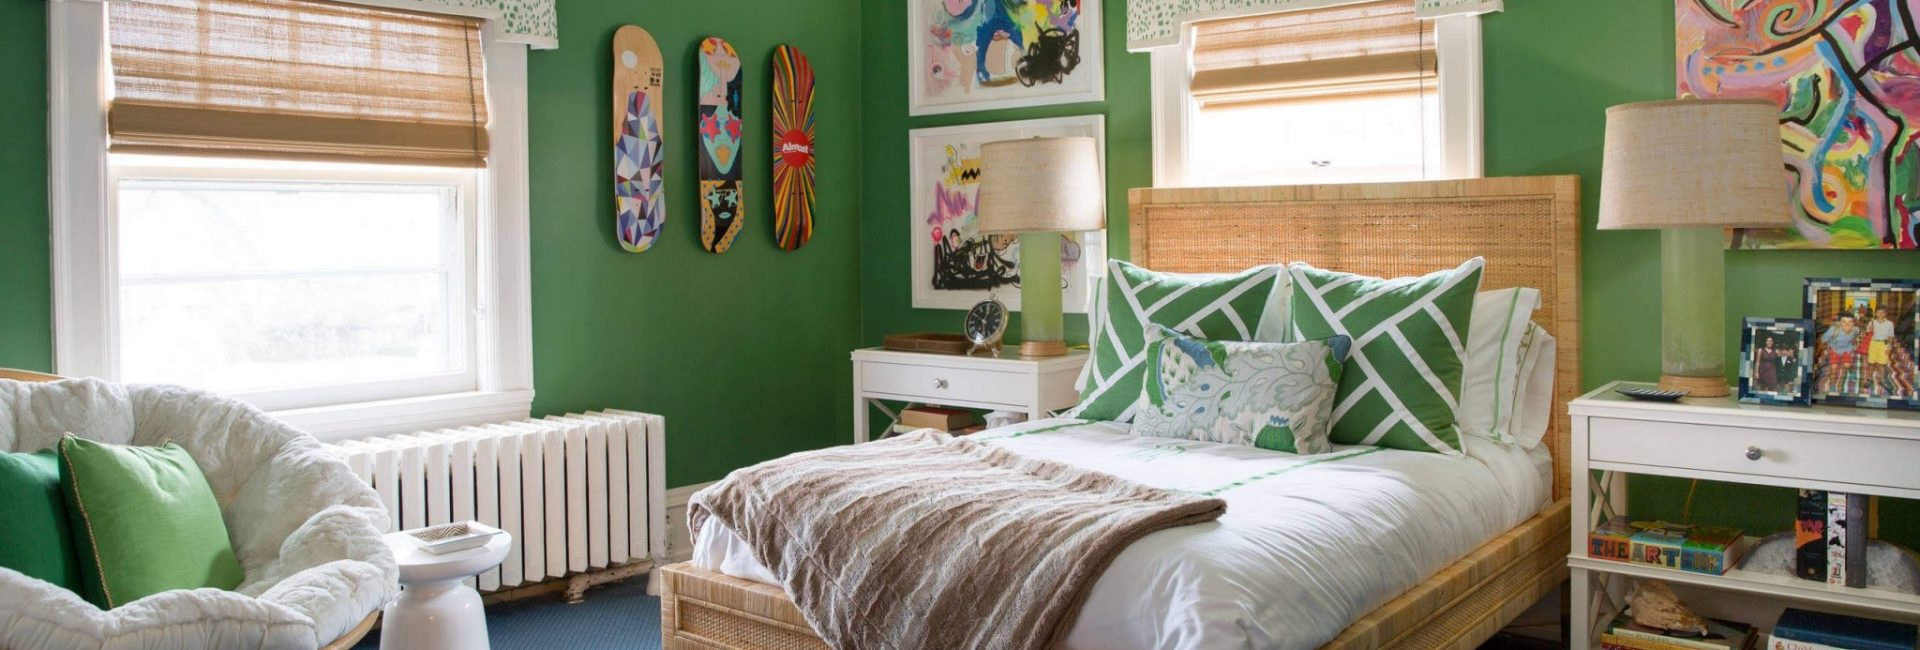 Green themed teenager's bedroom - recreate the style at Fabric Gallery and Interiors, York